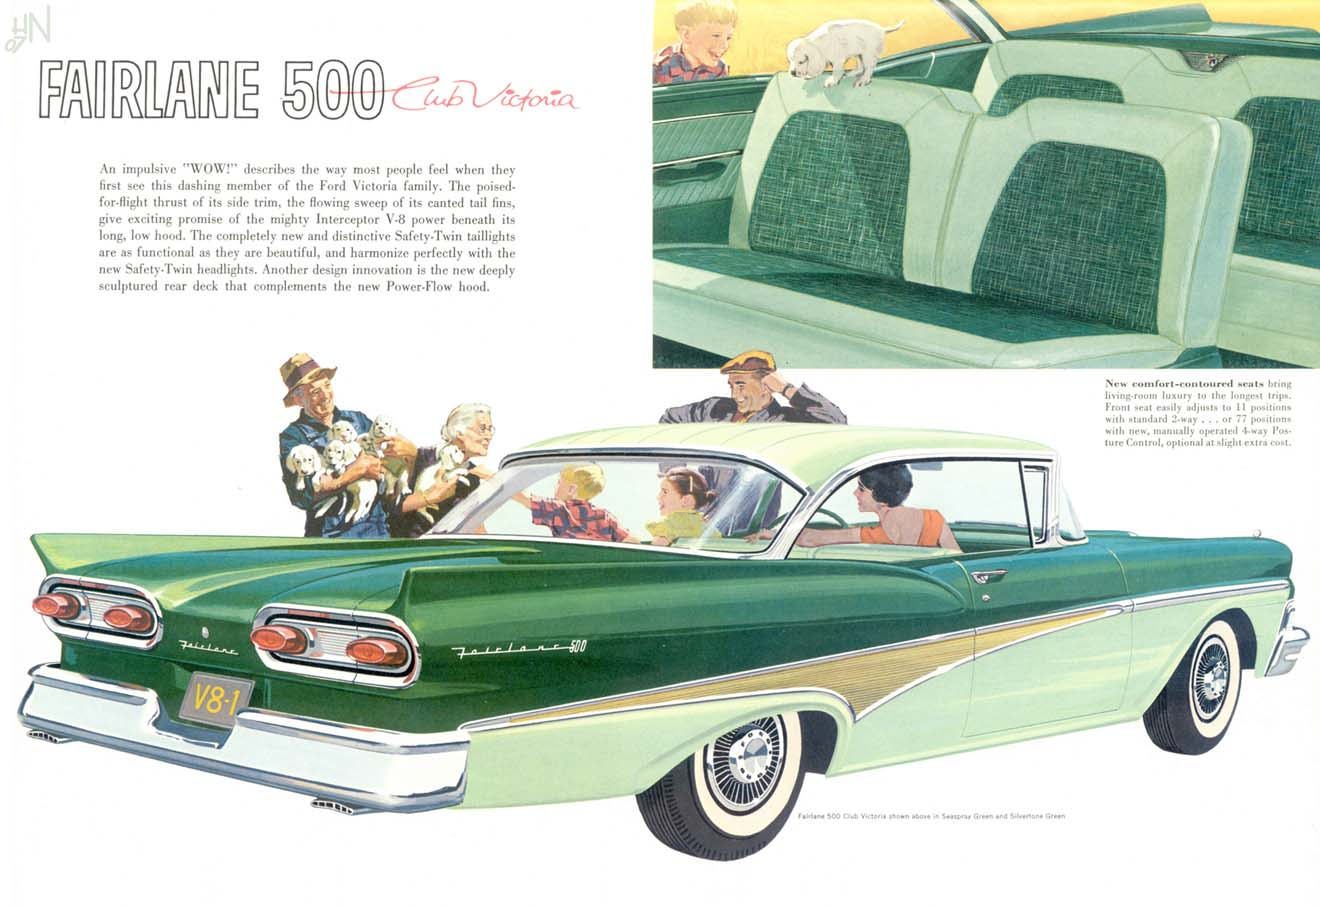 Nourse Ford Top Car Models And Price 2019 2020 1957 Fairlane Retractable Wiring Diagram 500 Brochure